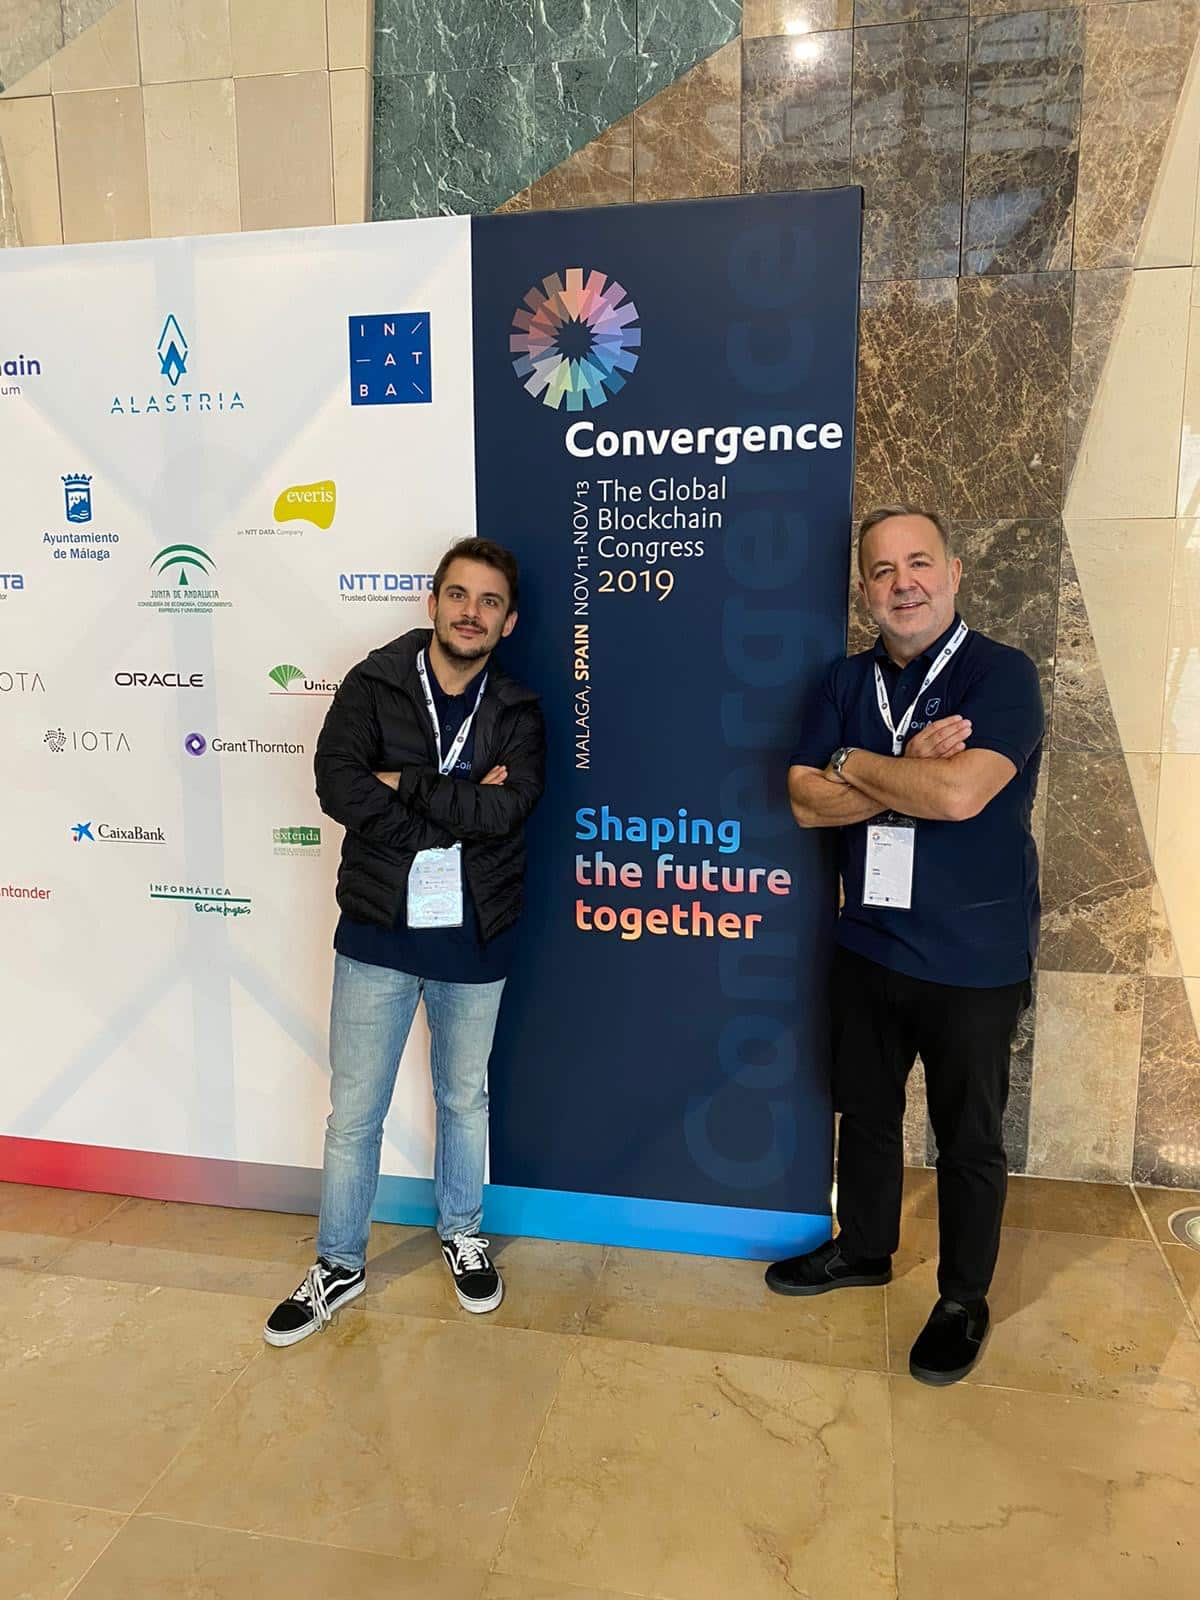 BlockchainArmy at Convergence 2019, The Global Blockchain Congress